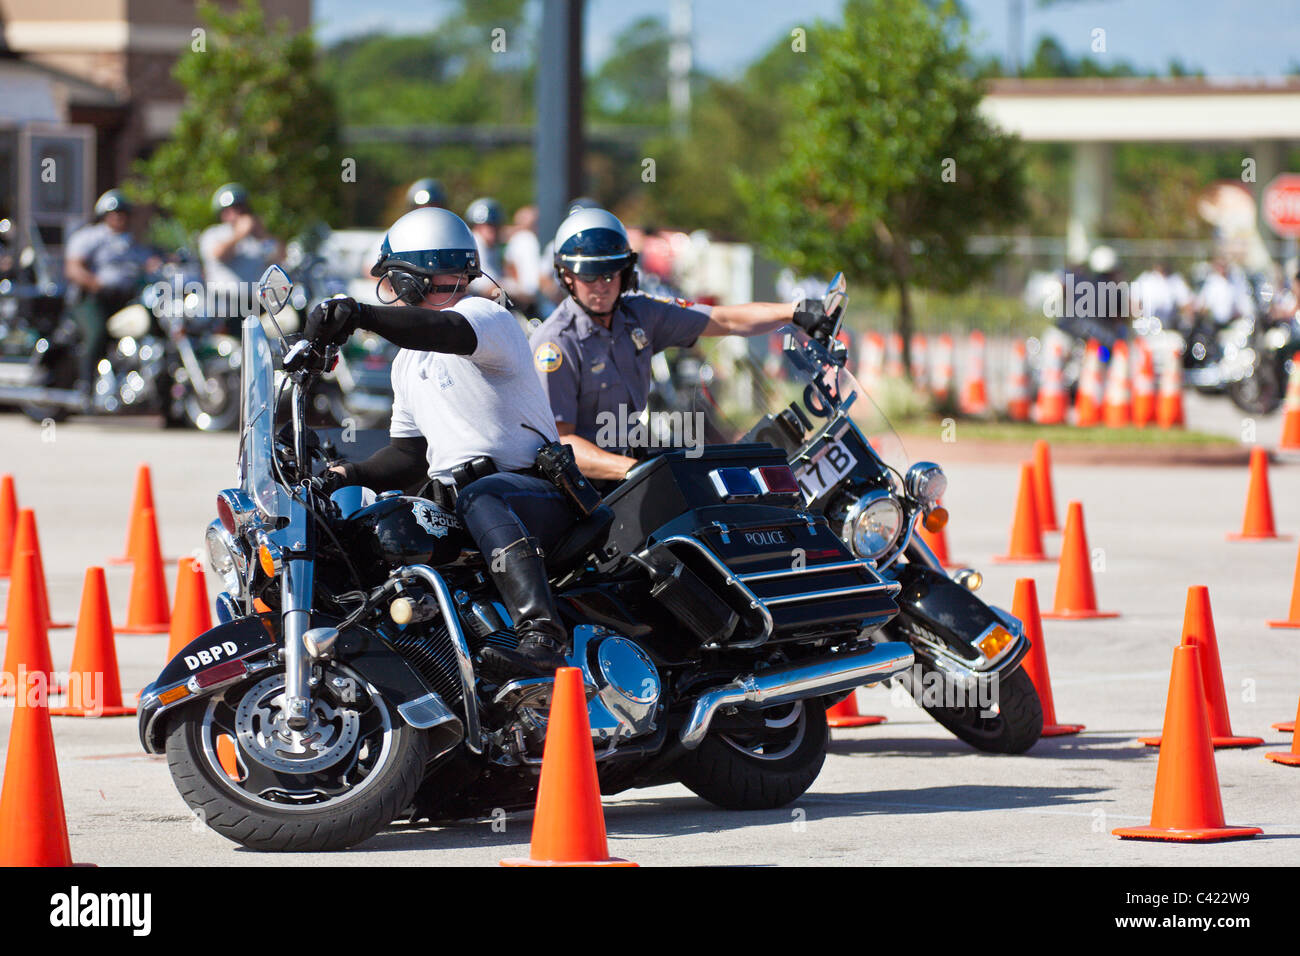 Law Enforcement Motorcycle Teams Compete On A Cone Course At The